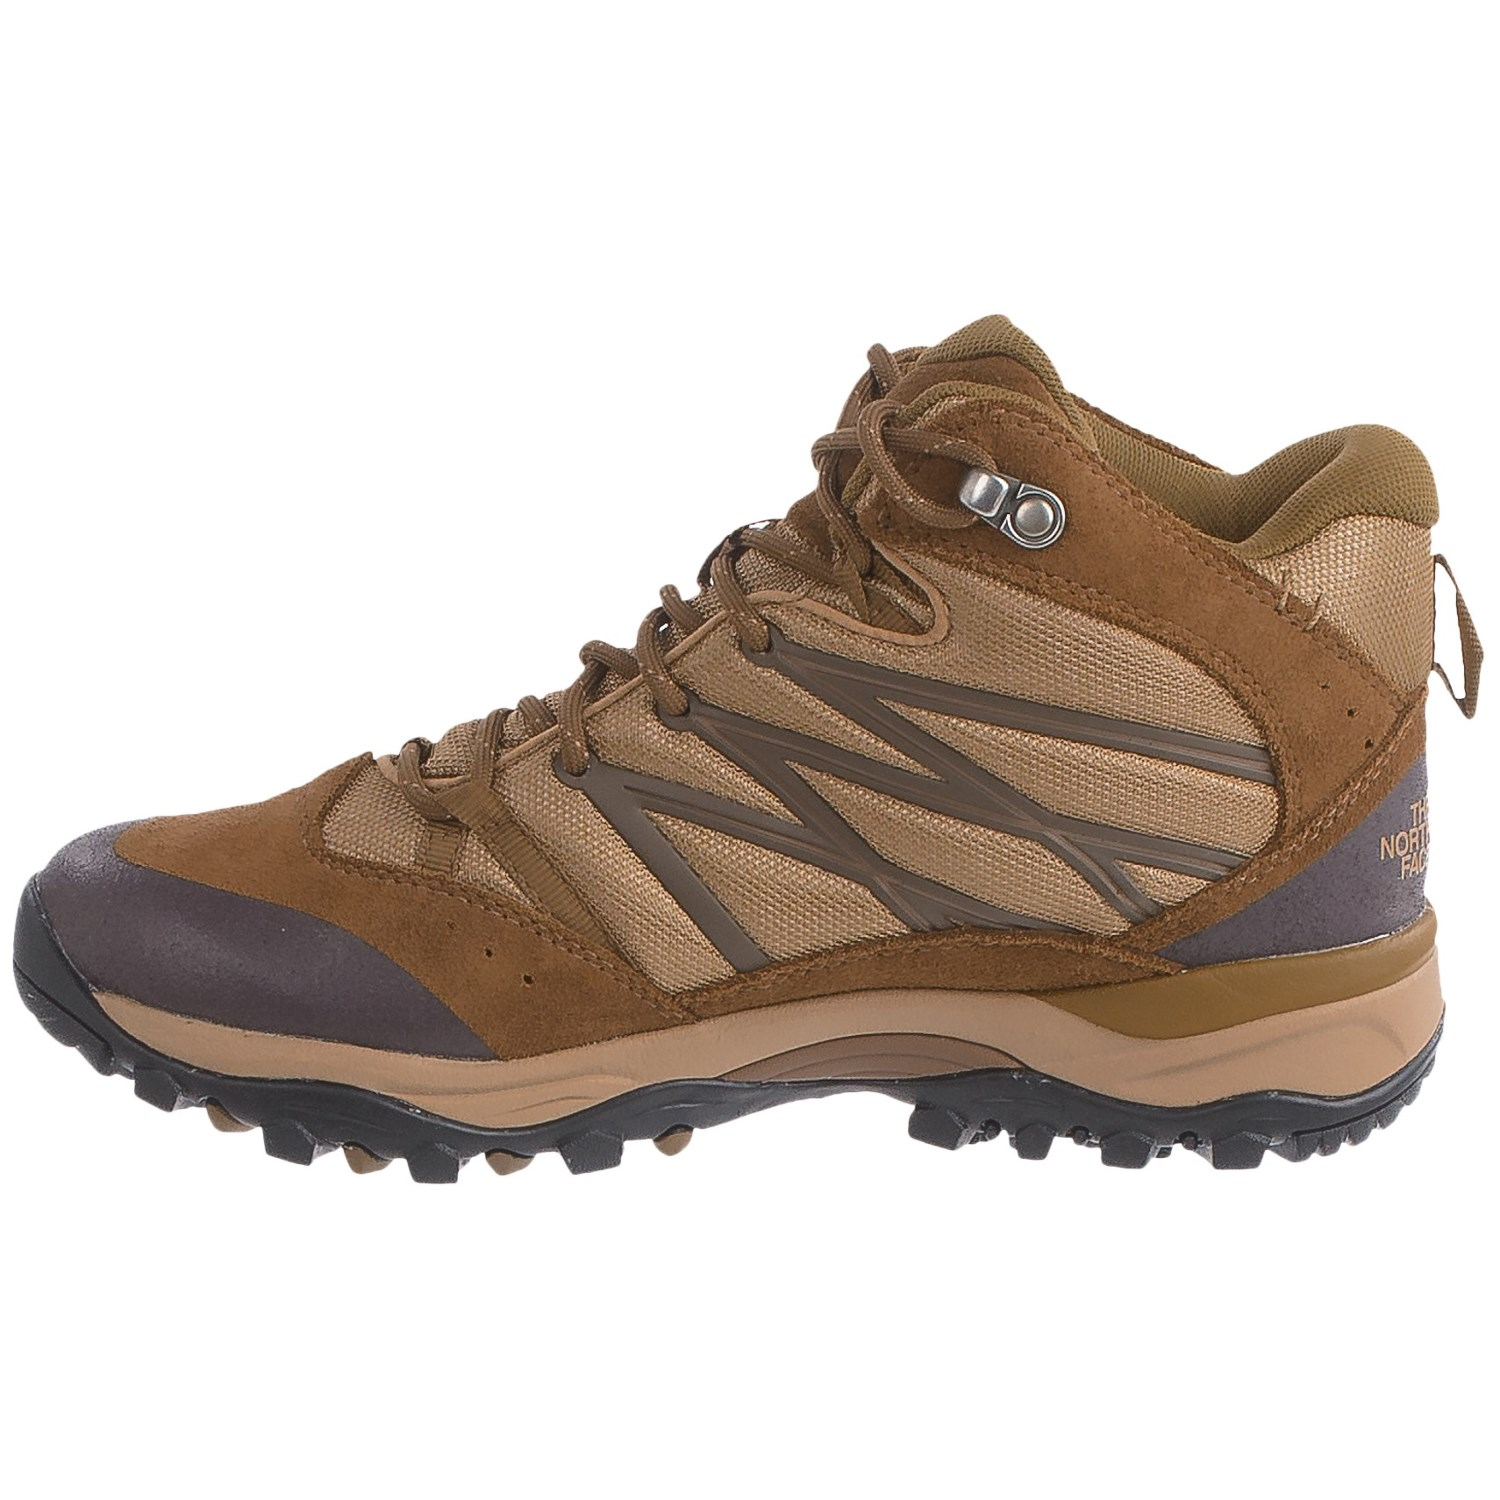 The North Face Storm Waterproof Hiking Shoes Review